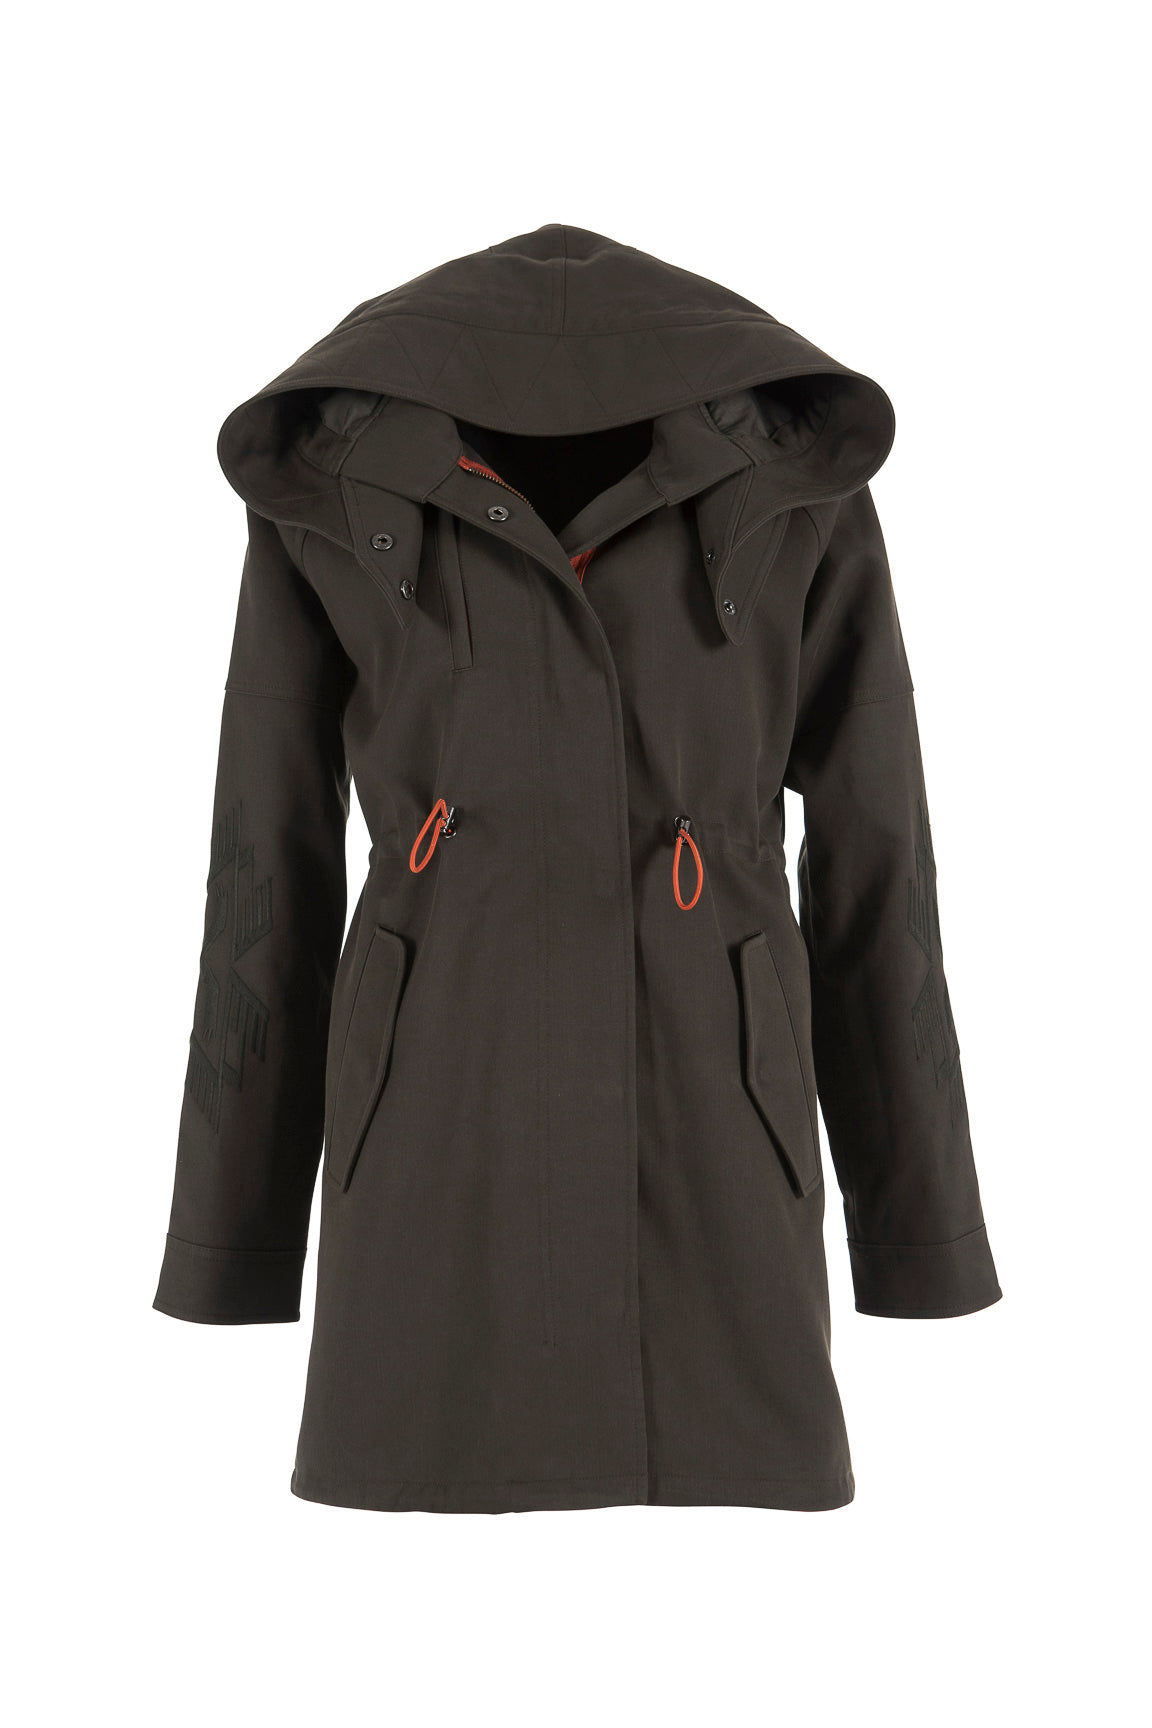 Women's Hooded Casual Parka with Embroidered Sleeves